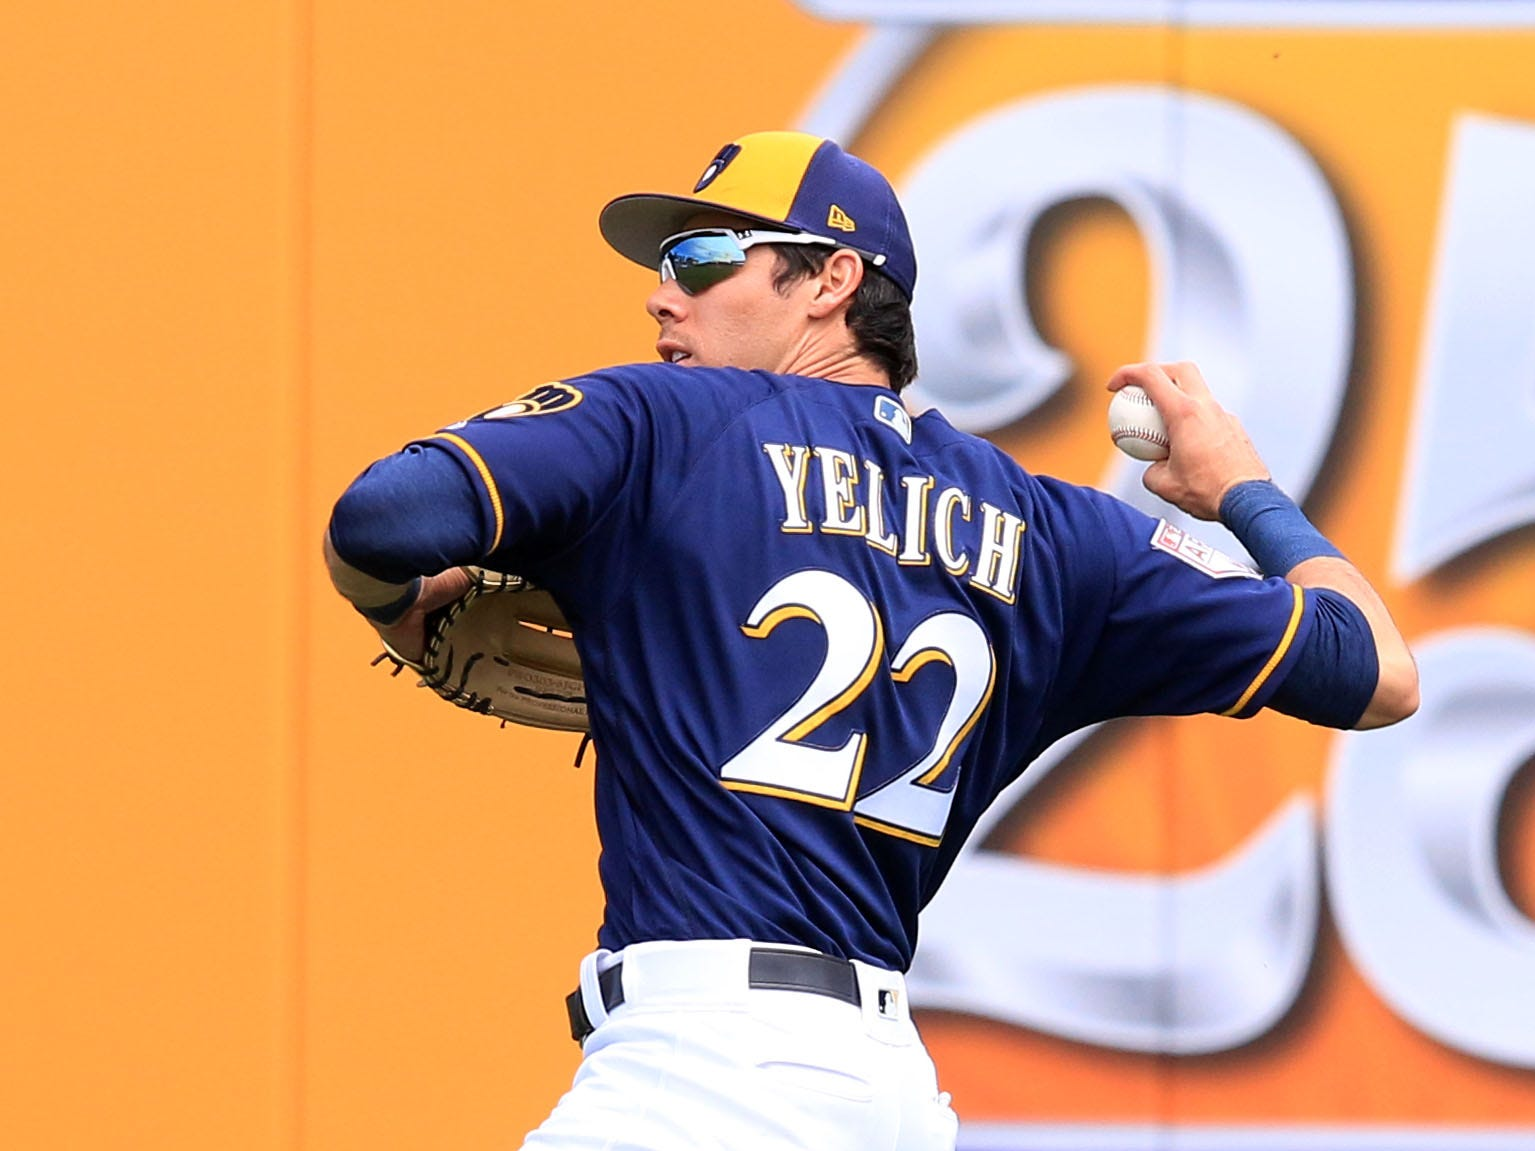 Brewers rightfielder Christain Yelich throws the ball back to the infield after catching a fly ball Thursday.